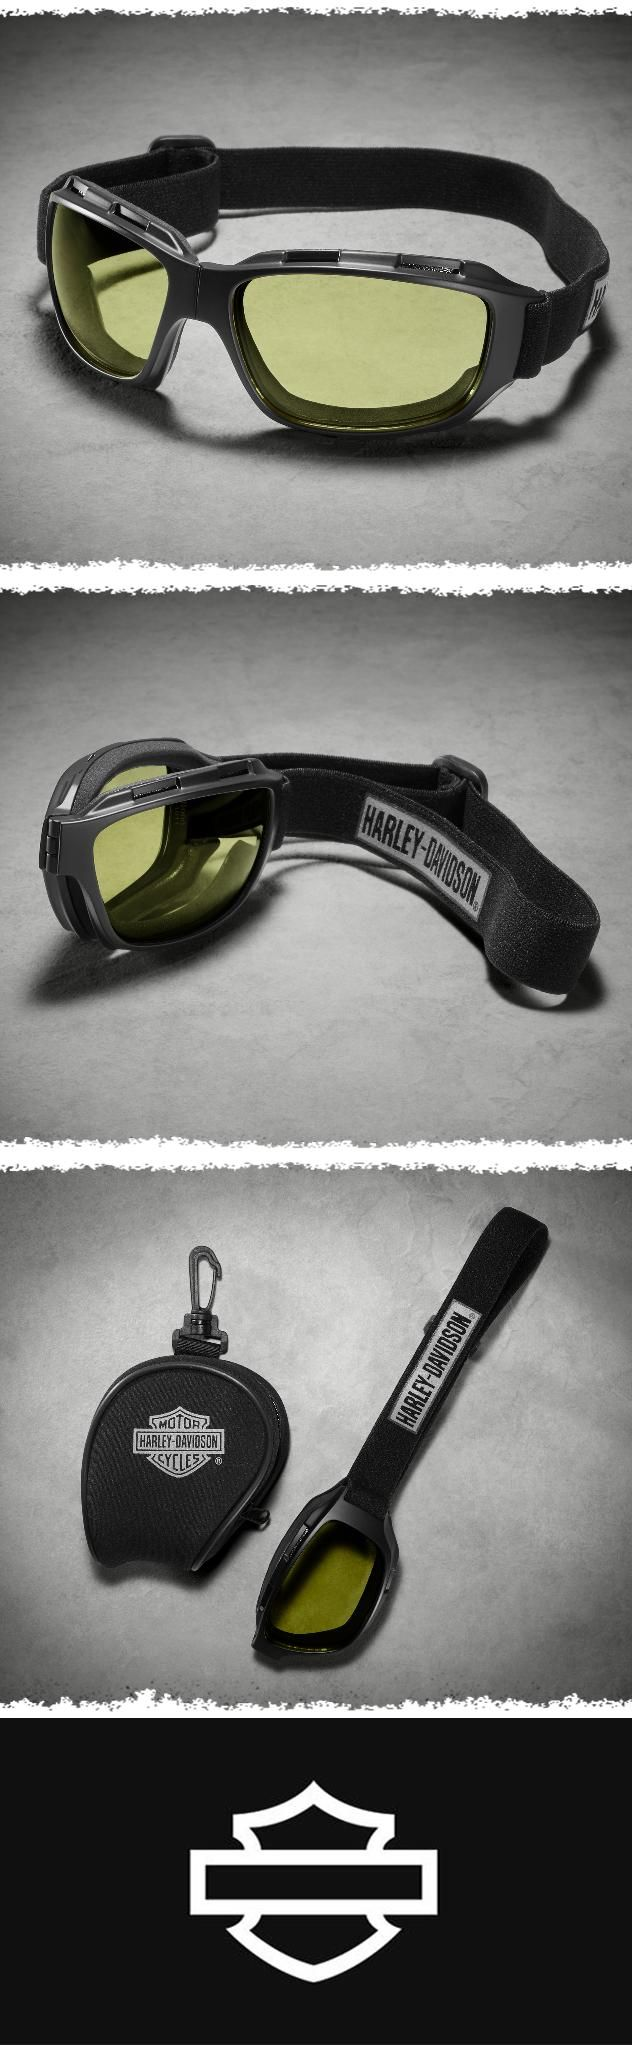 Top off your ride with H-D Performance eyewear. | Harley-Davidson Bend Performance Goggles - Yellow